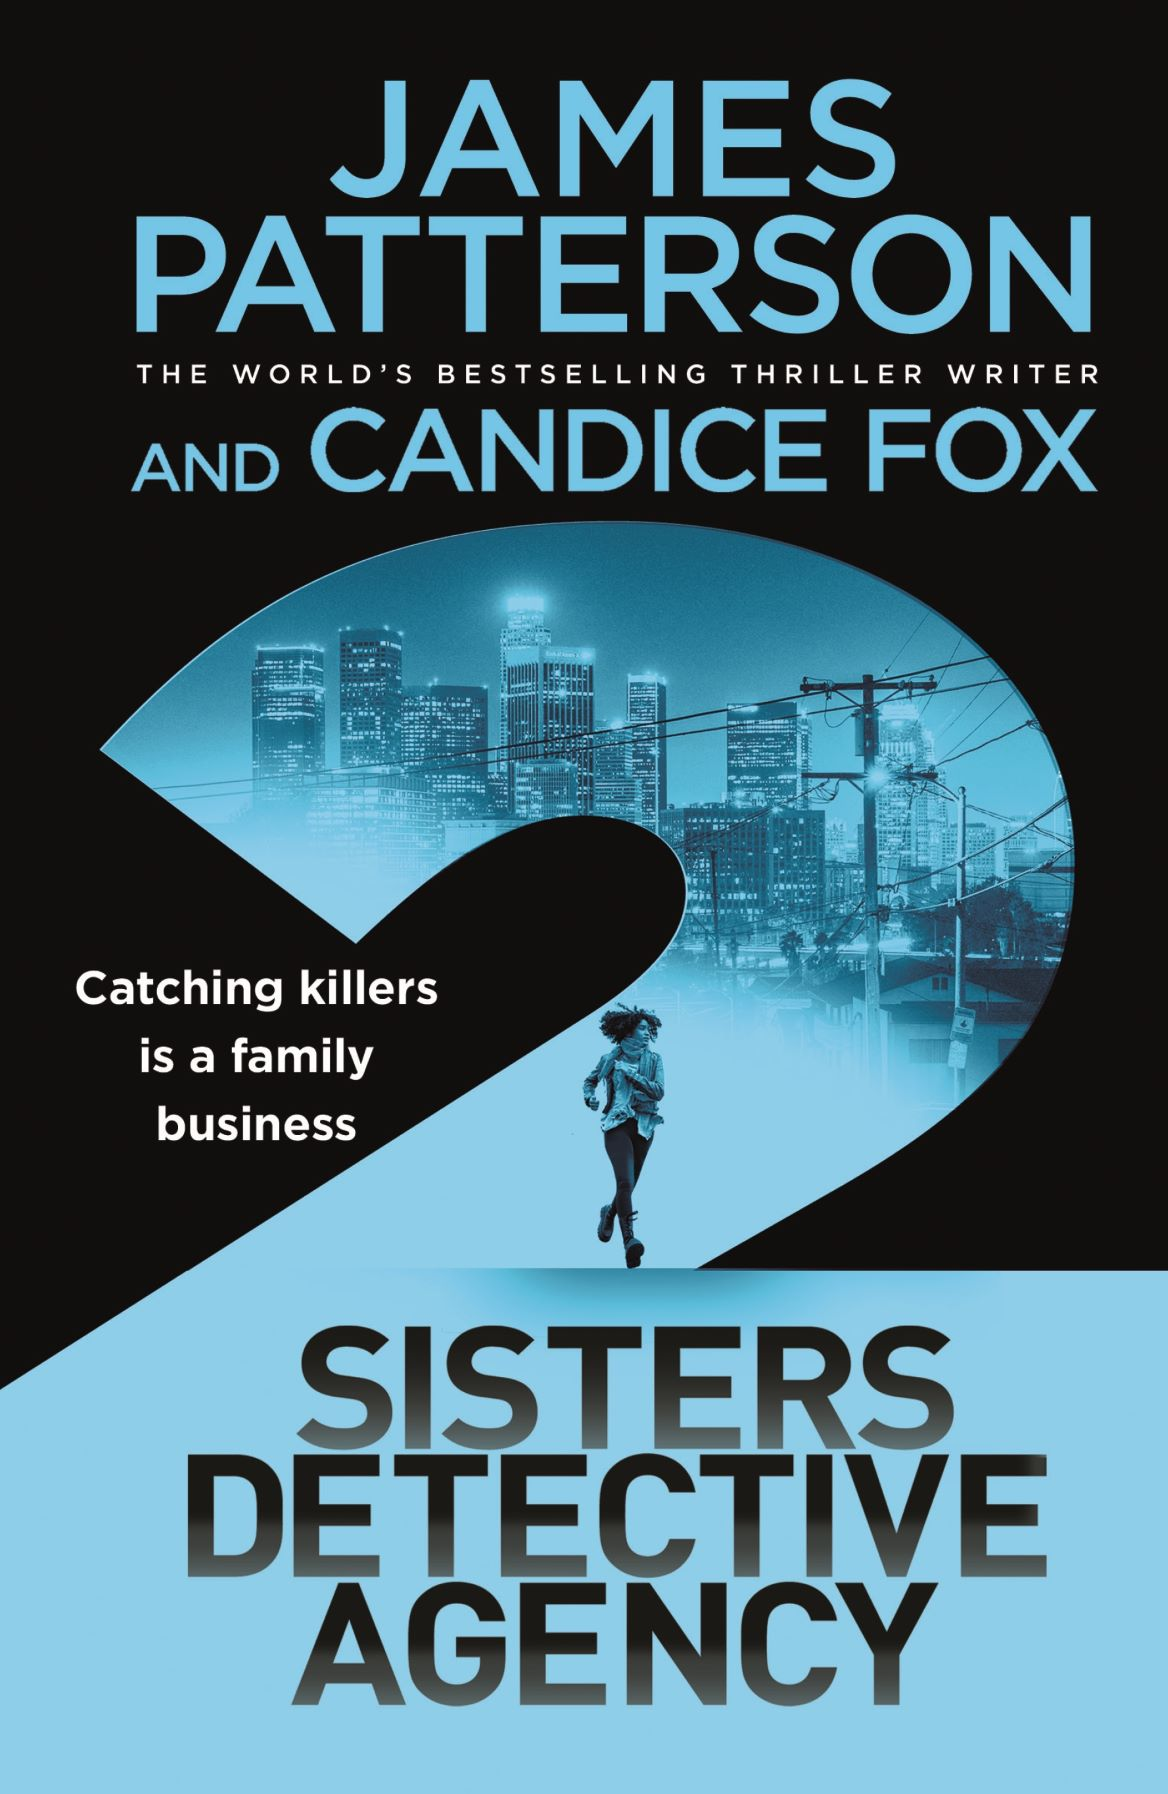 Two Sisters Detective Agency by James Patterson and Candice Fox